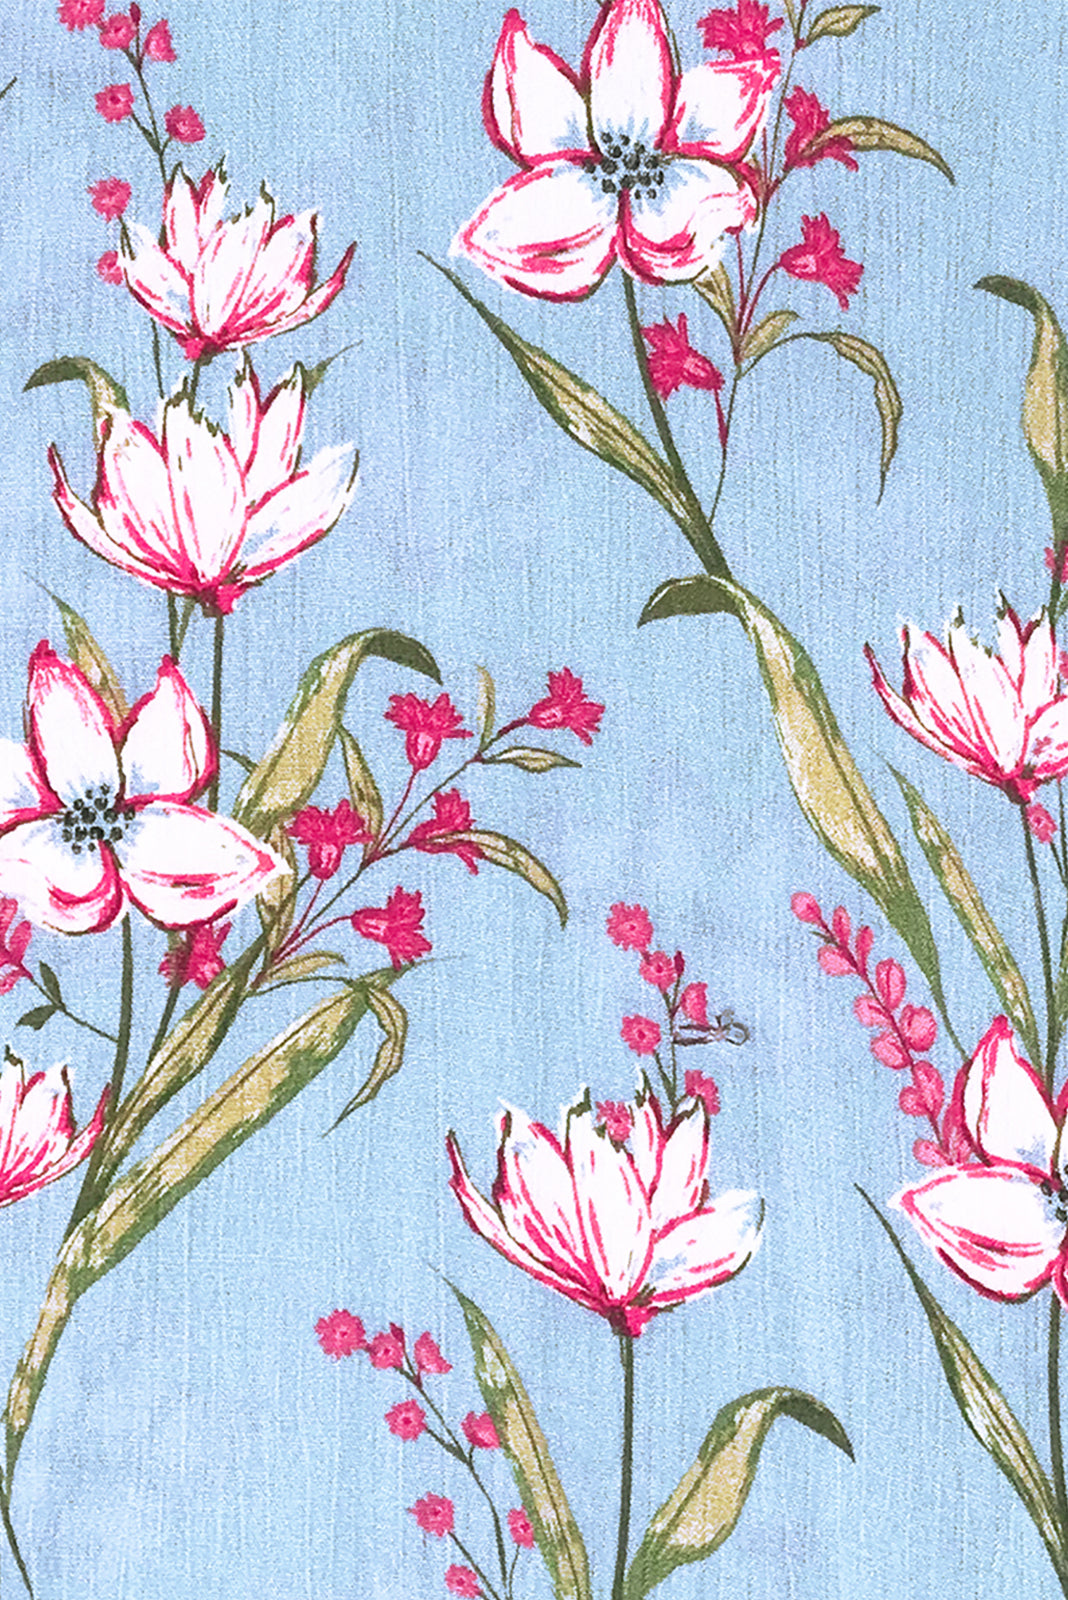 Fabric Swatch of Willow Misty Blue Maxi Dress featuring crinkle rayon in Sky blue base with floral print.